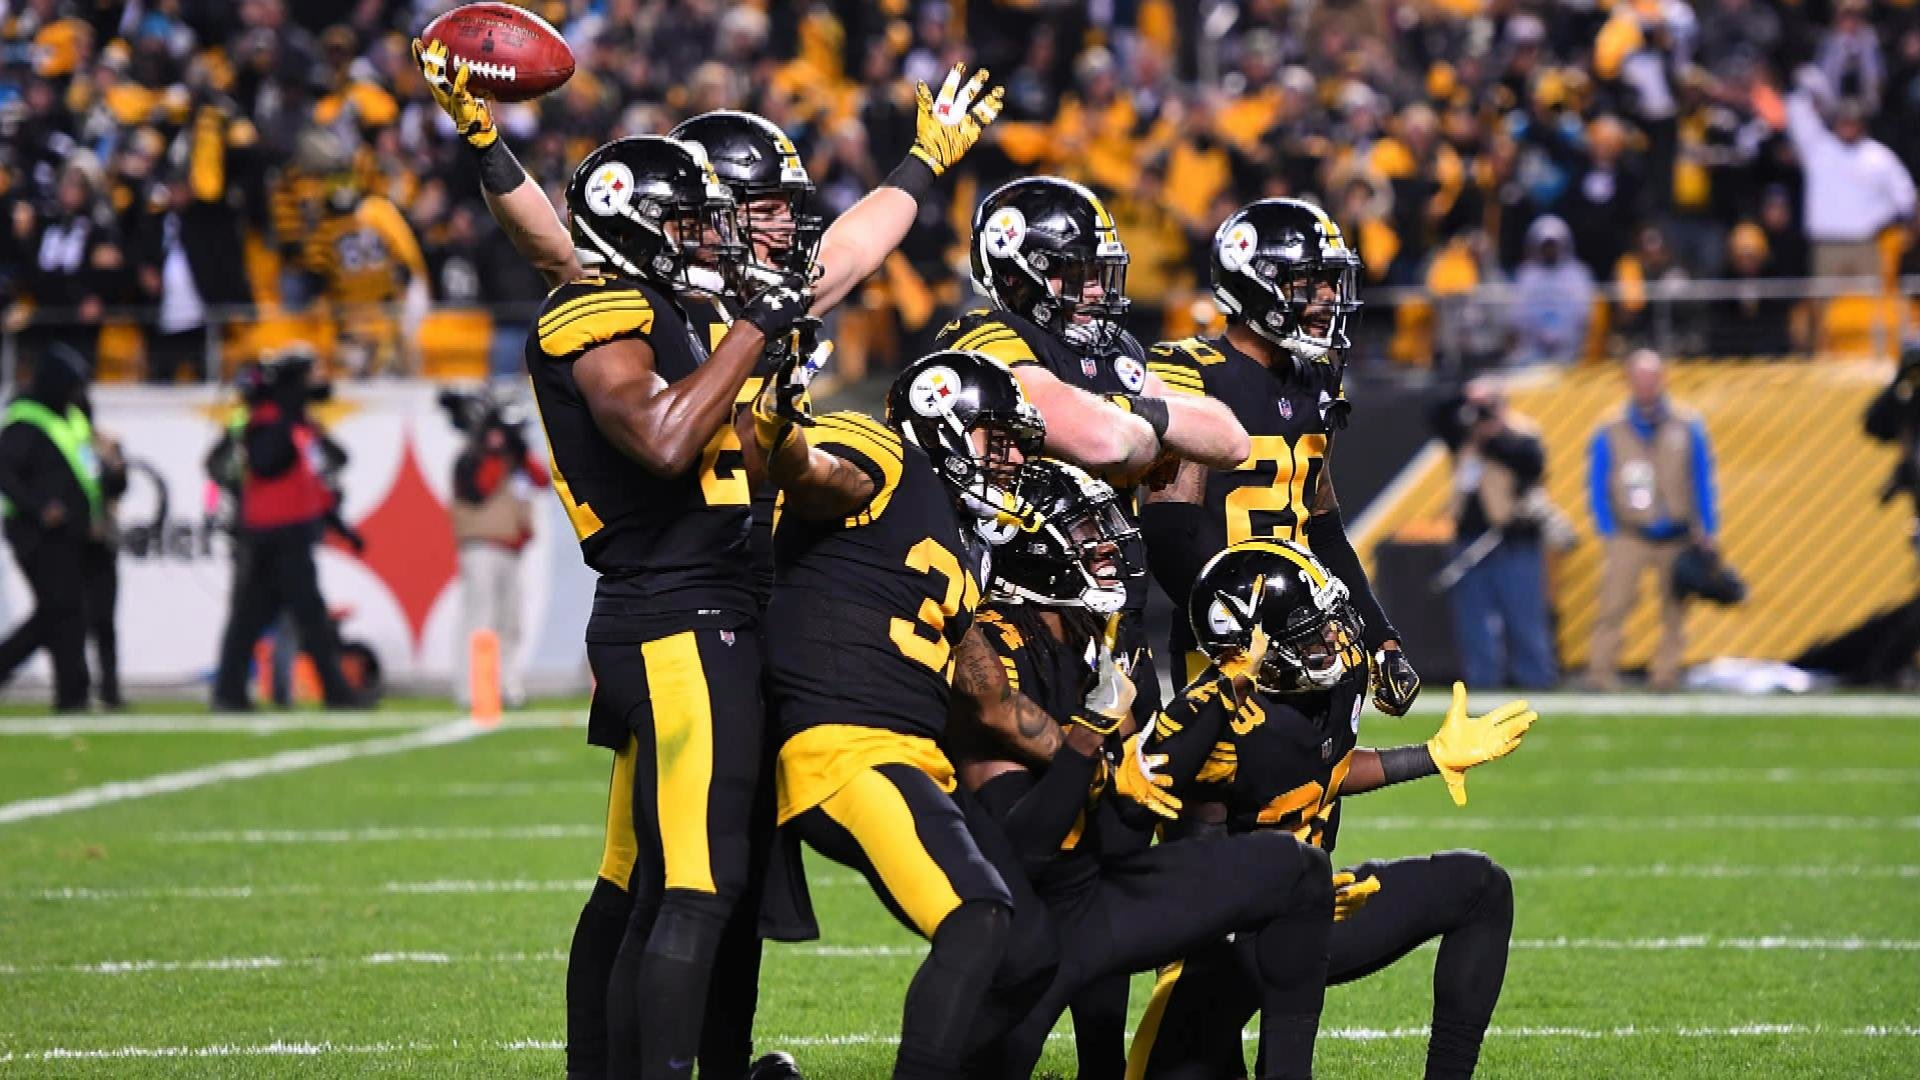 aa79ad7bc Pittsburgh Steelers roll over Carolina Panthers on Thursday Night Football